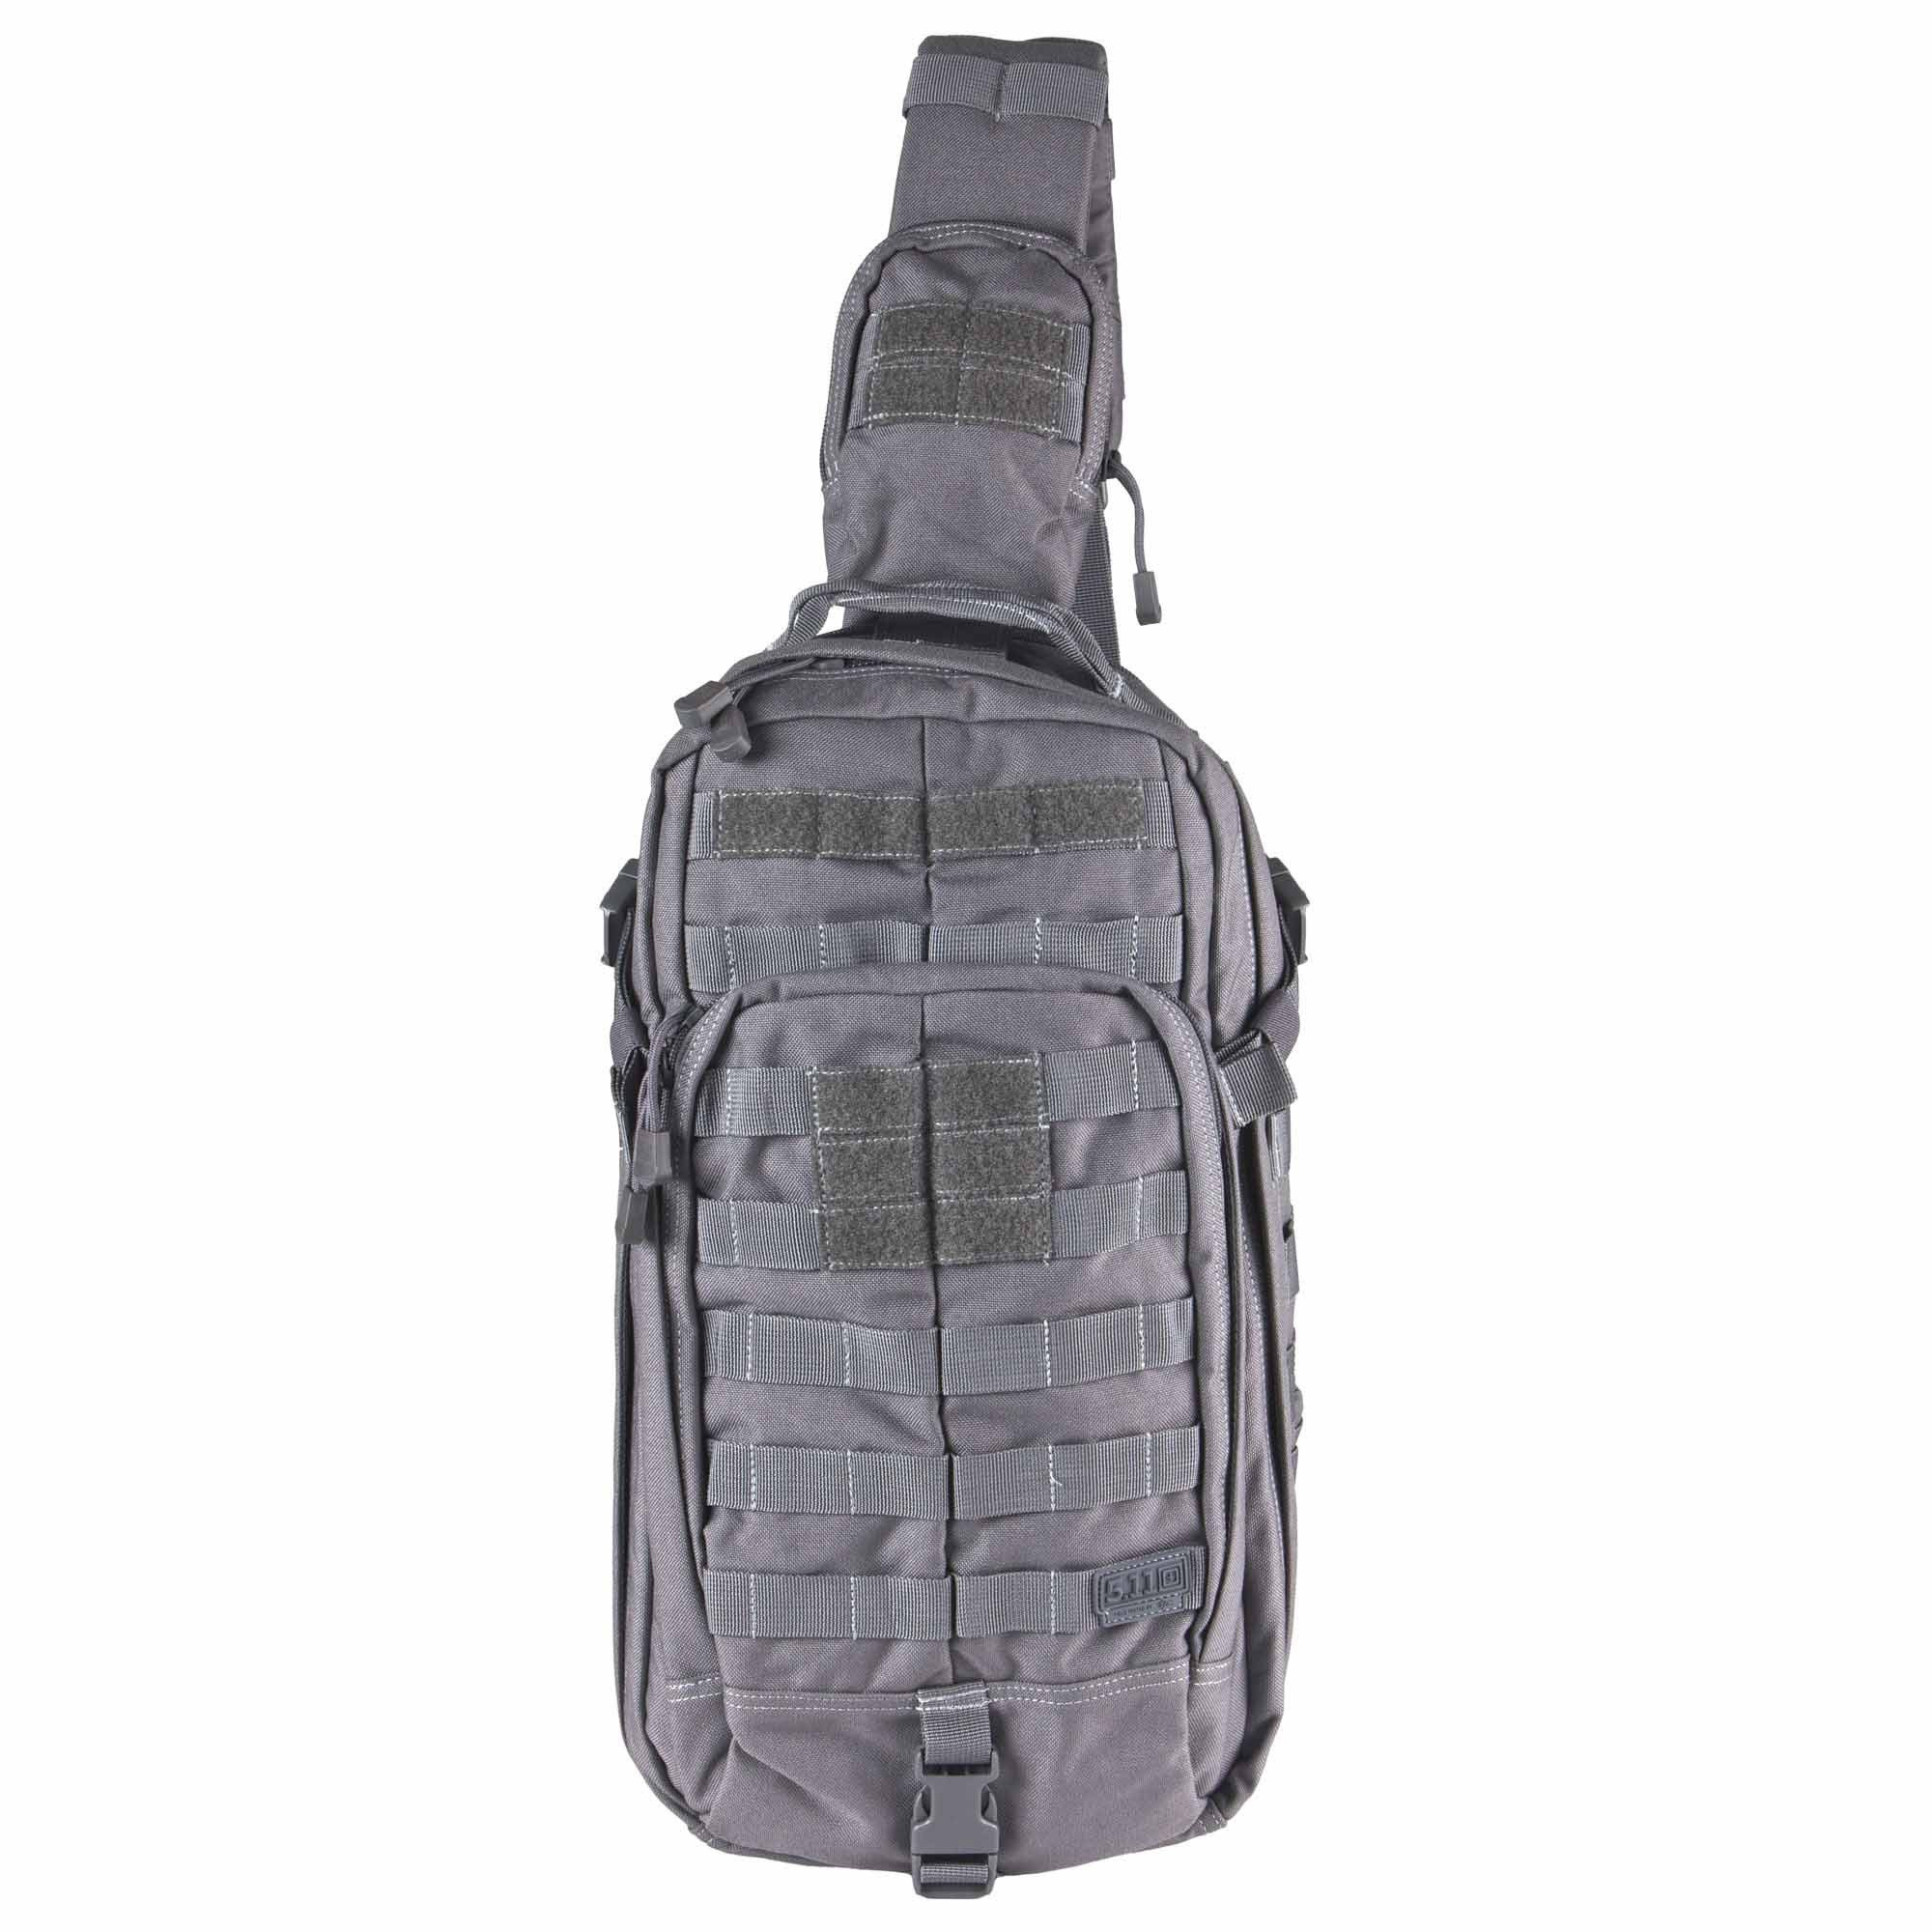 5.11 56964 Rush Moab 10 Style 56964 Tactical Sling Pack, Talc OD